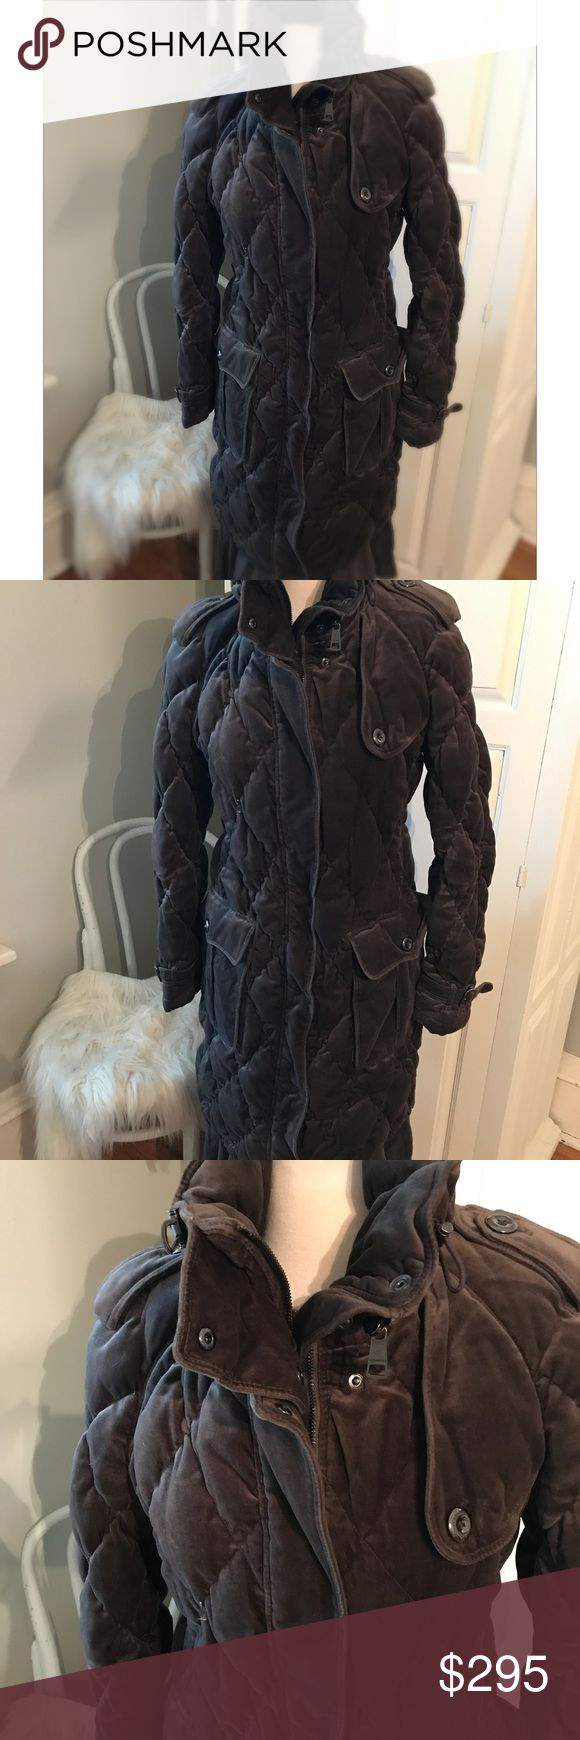 Authentic Burberry quilted Sift Chocolate Coat Duck down quilted in the most beautiful chocolate brown color. Super warm and classic style. Zipper hood, pockets and super soft. Very expensive coat originally. In gently used condition, please see pictures for a few minor spots, also feathers will naturally poke out once in awhile. The only thing wrong with it is the zipper isn't working all the time and is well worth the investment for someone to fix. Exquisite coat for those stylish winter…